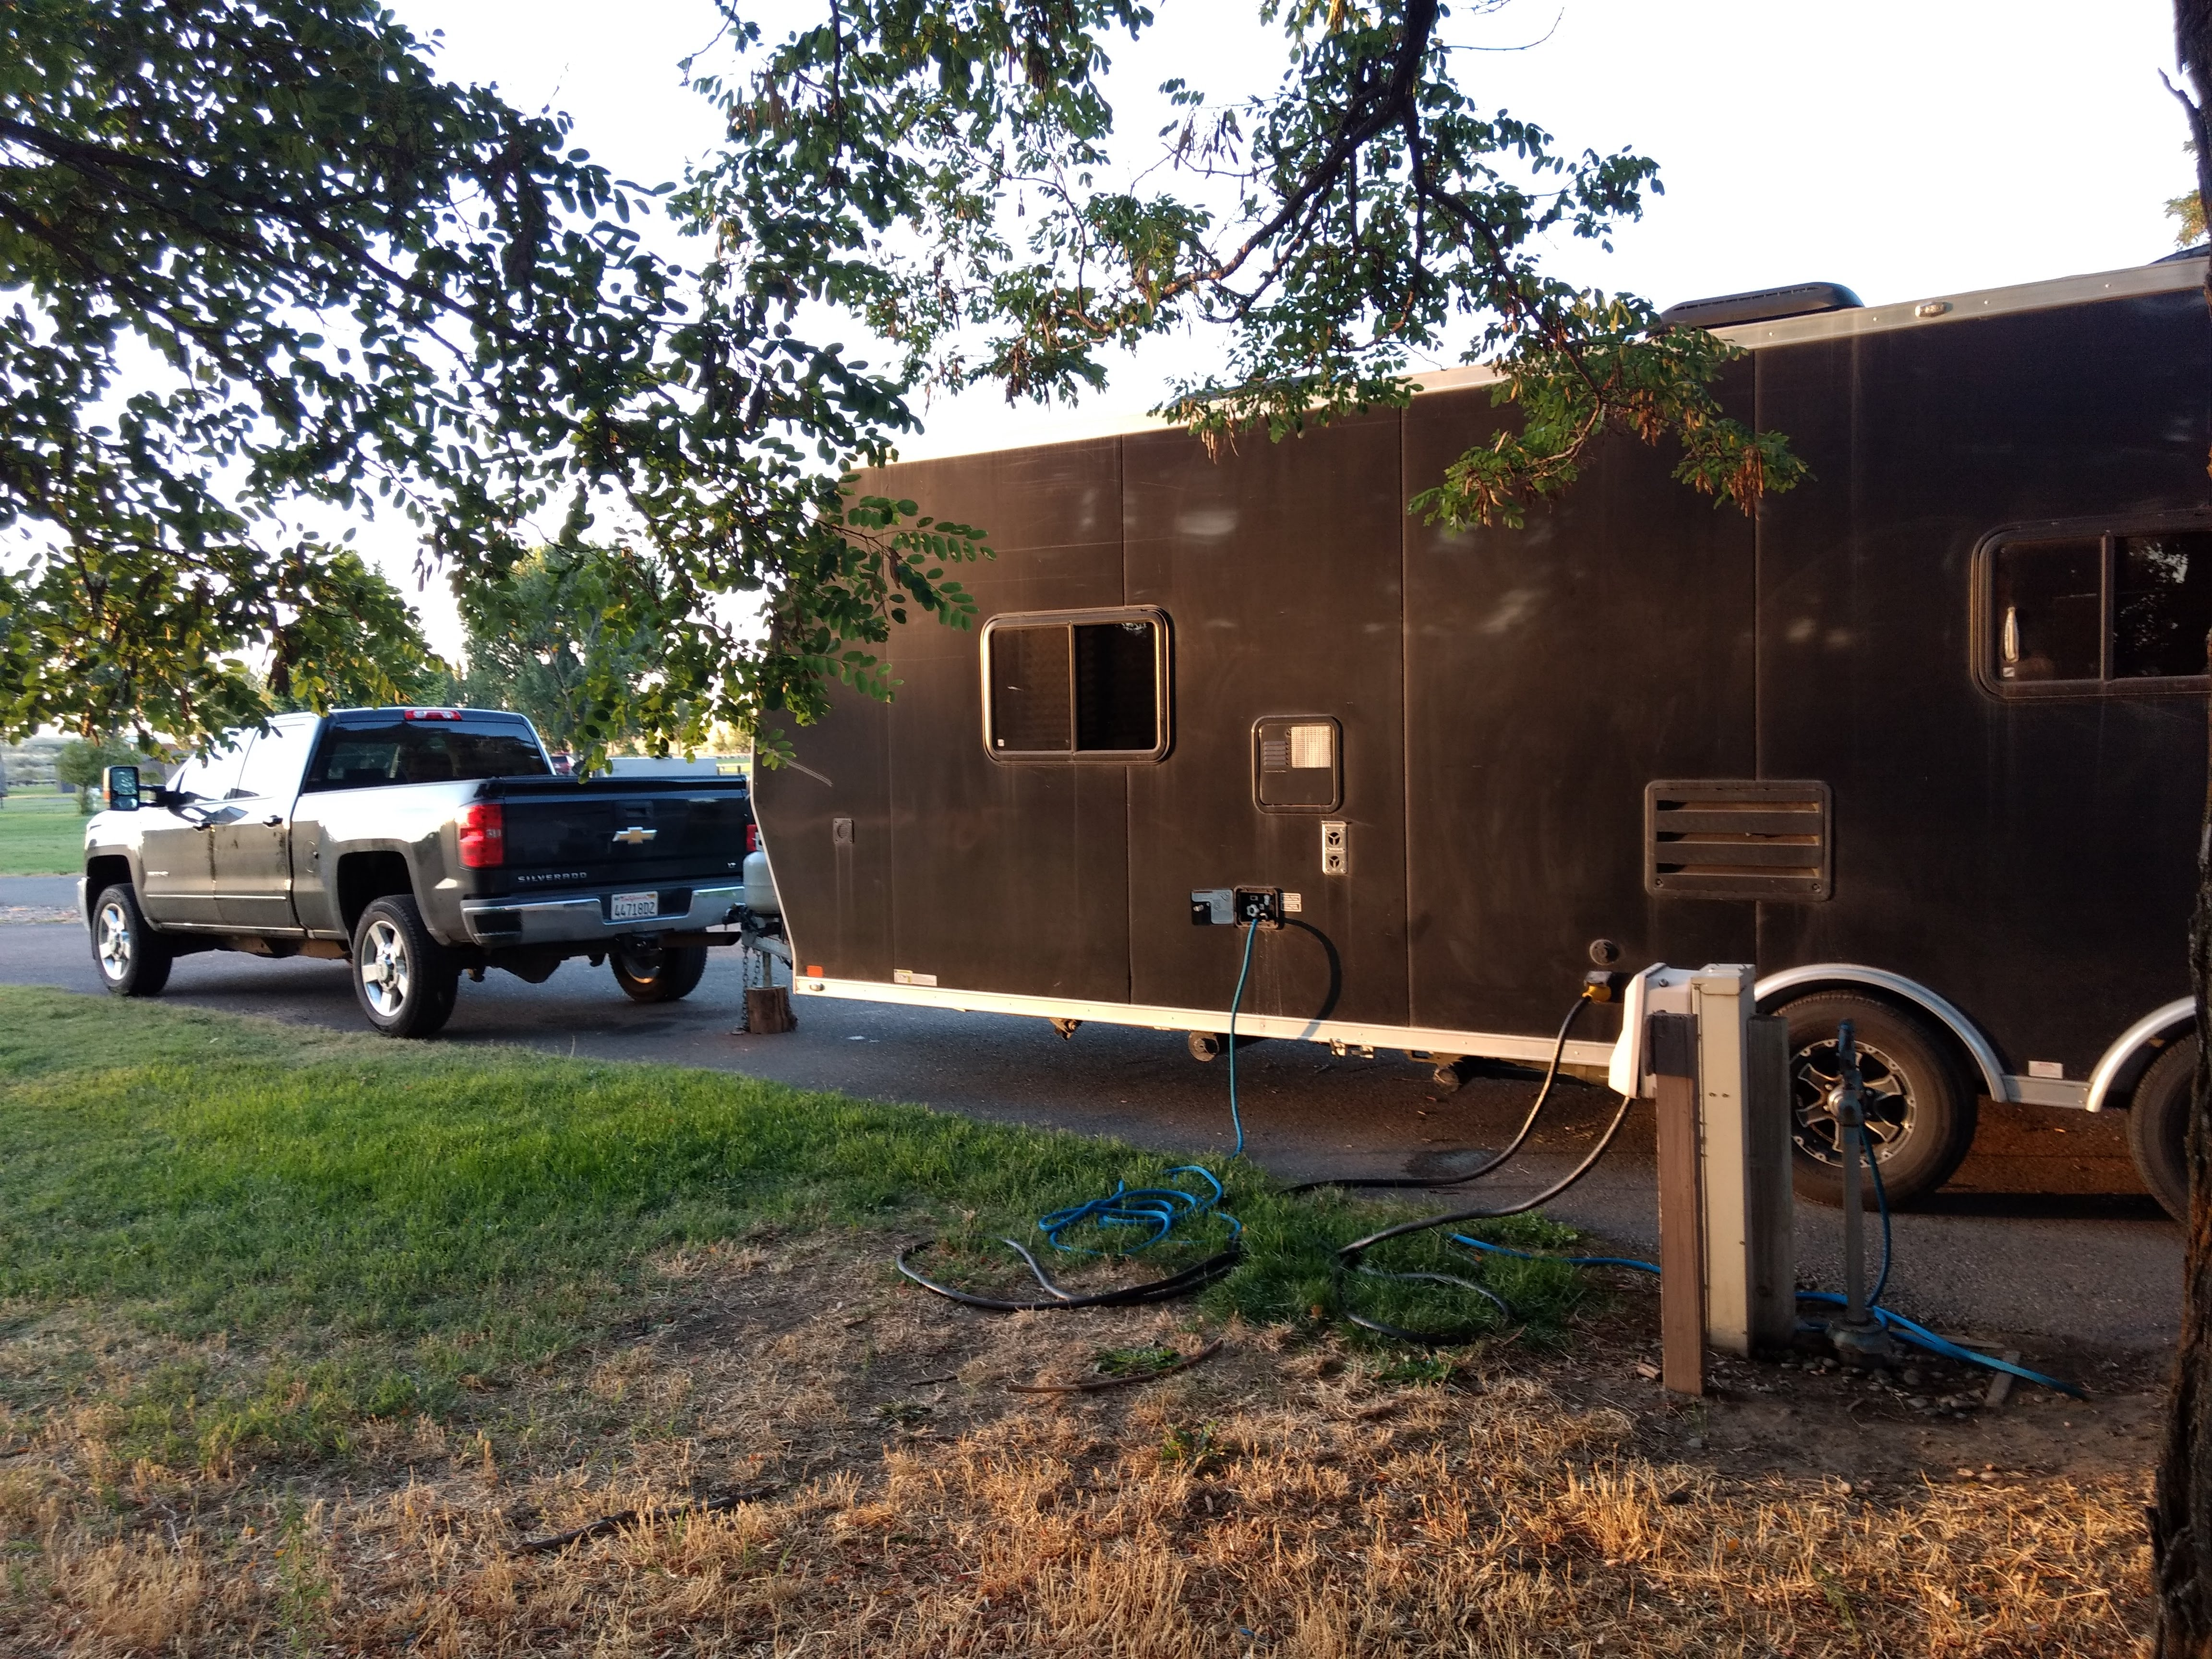 Horn Rapids County Park, Richland, WA - Review - Road Pickle